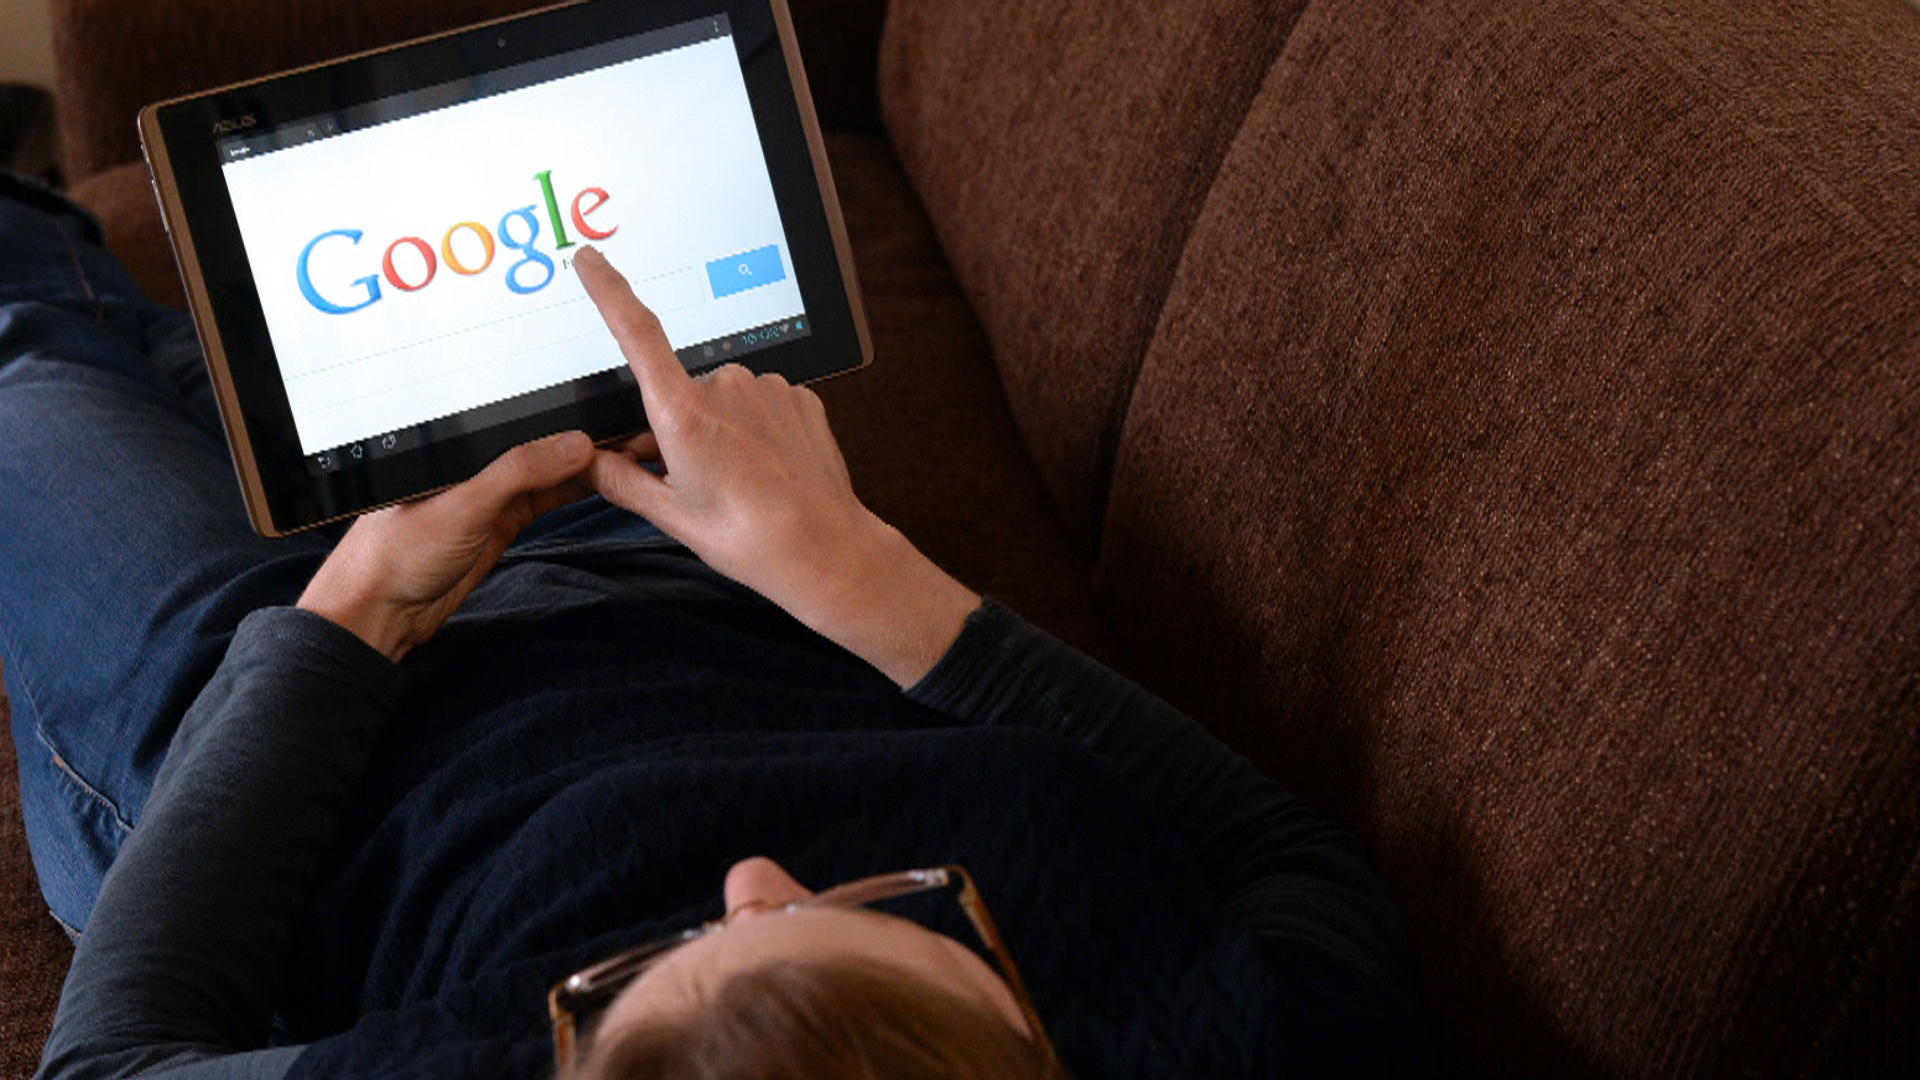 British Media Cry Foul After Google Removes 'Forgotten' Search Links